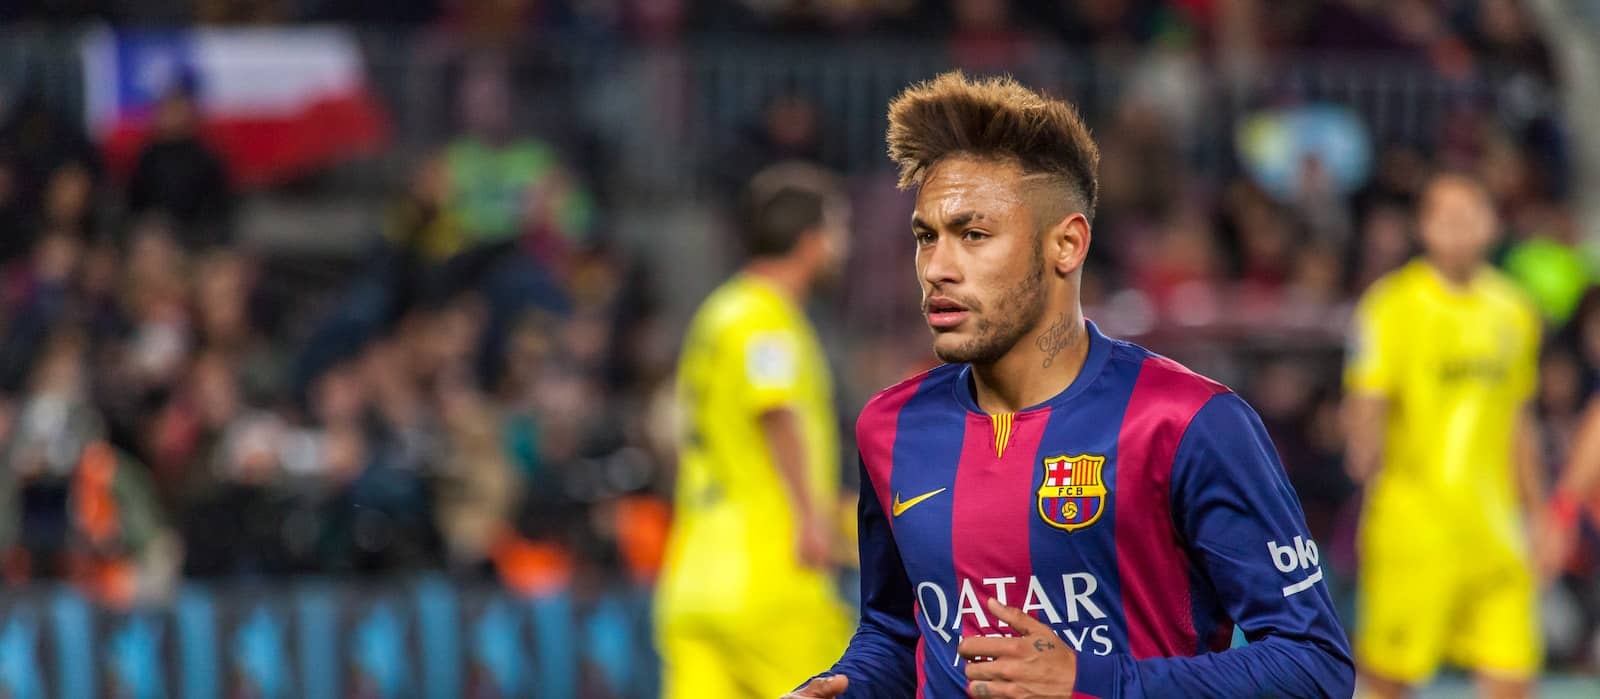 Neymar's agent confirms he was close to joining Manchester United